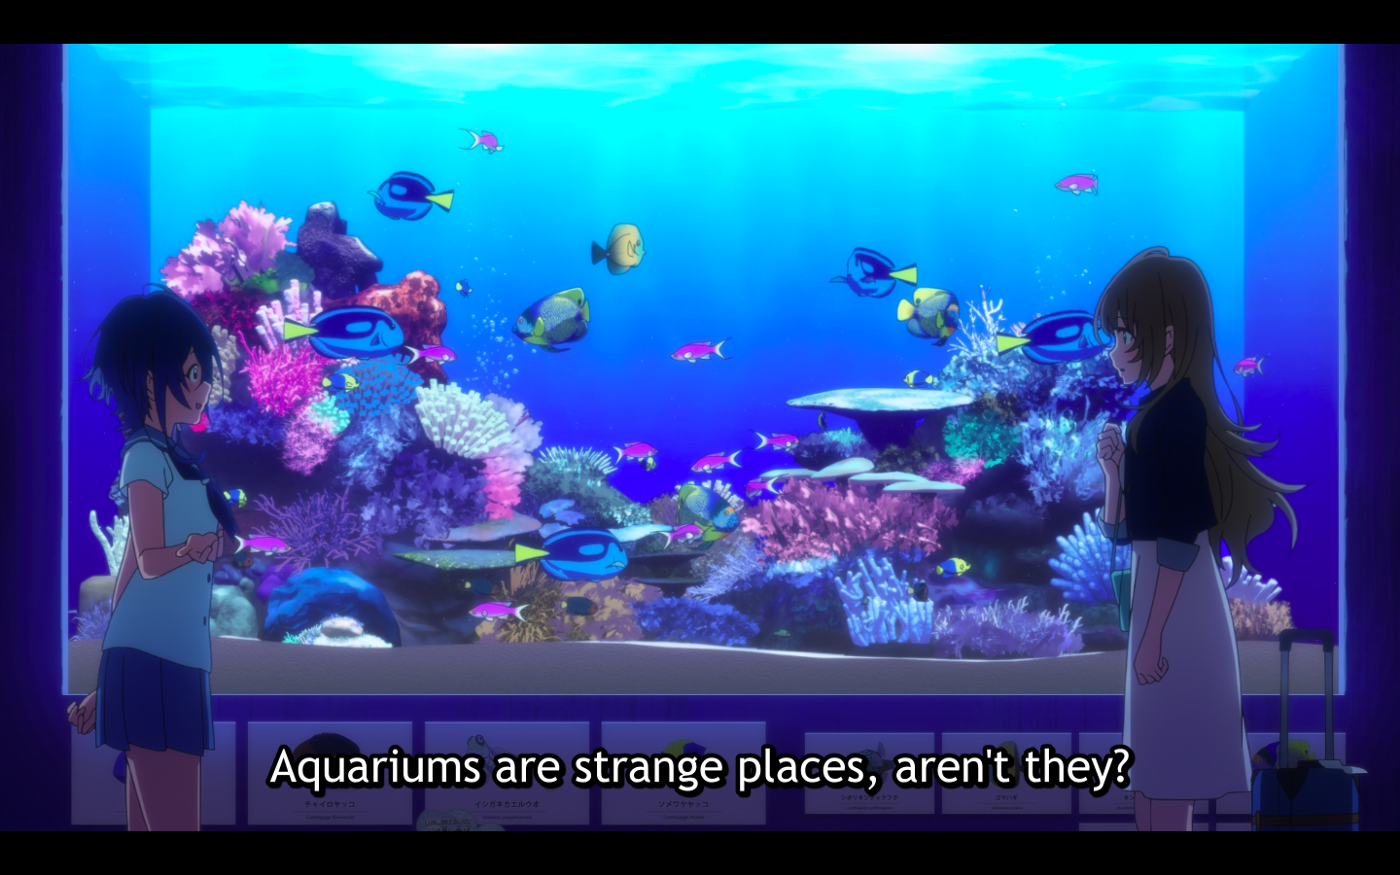 Kukuru and Fuuka meeting for the first time in front of a fish tank showing distance.